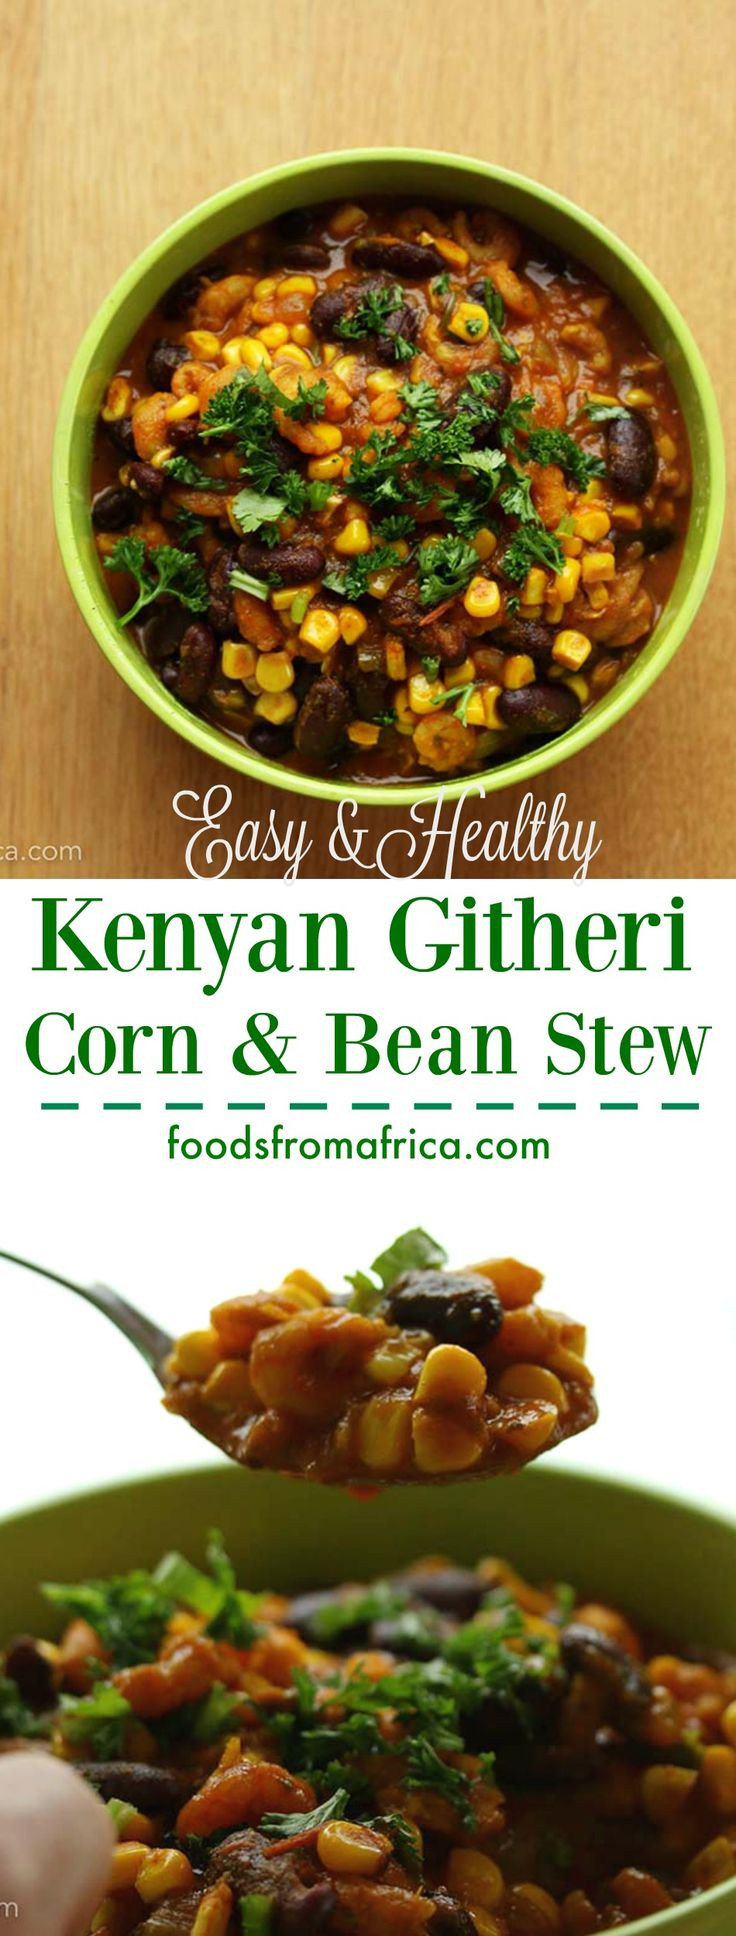 Healthy African American Recipes  452 best around the world theme images on Pinterest